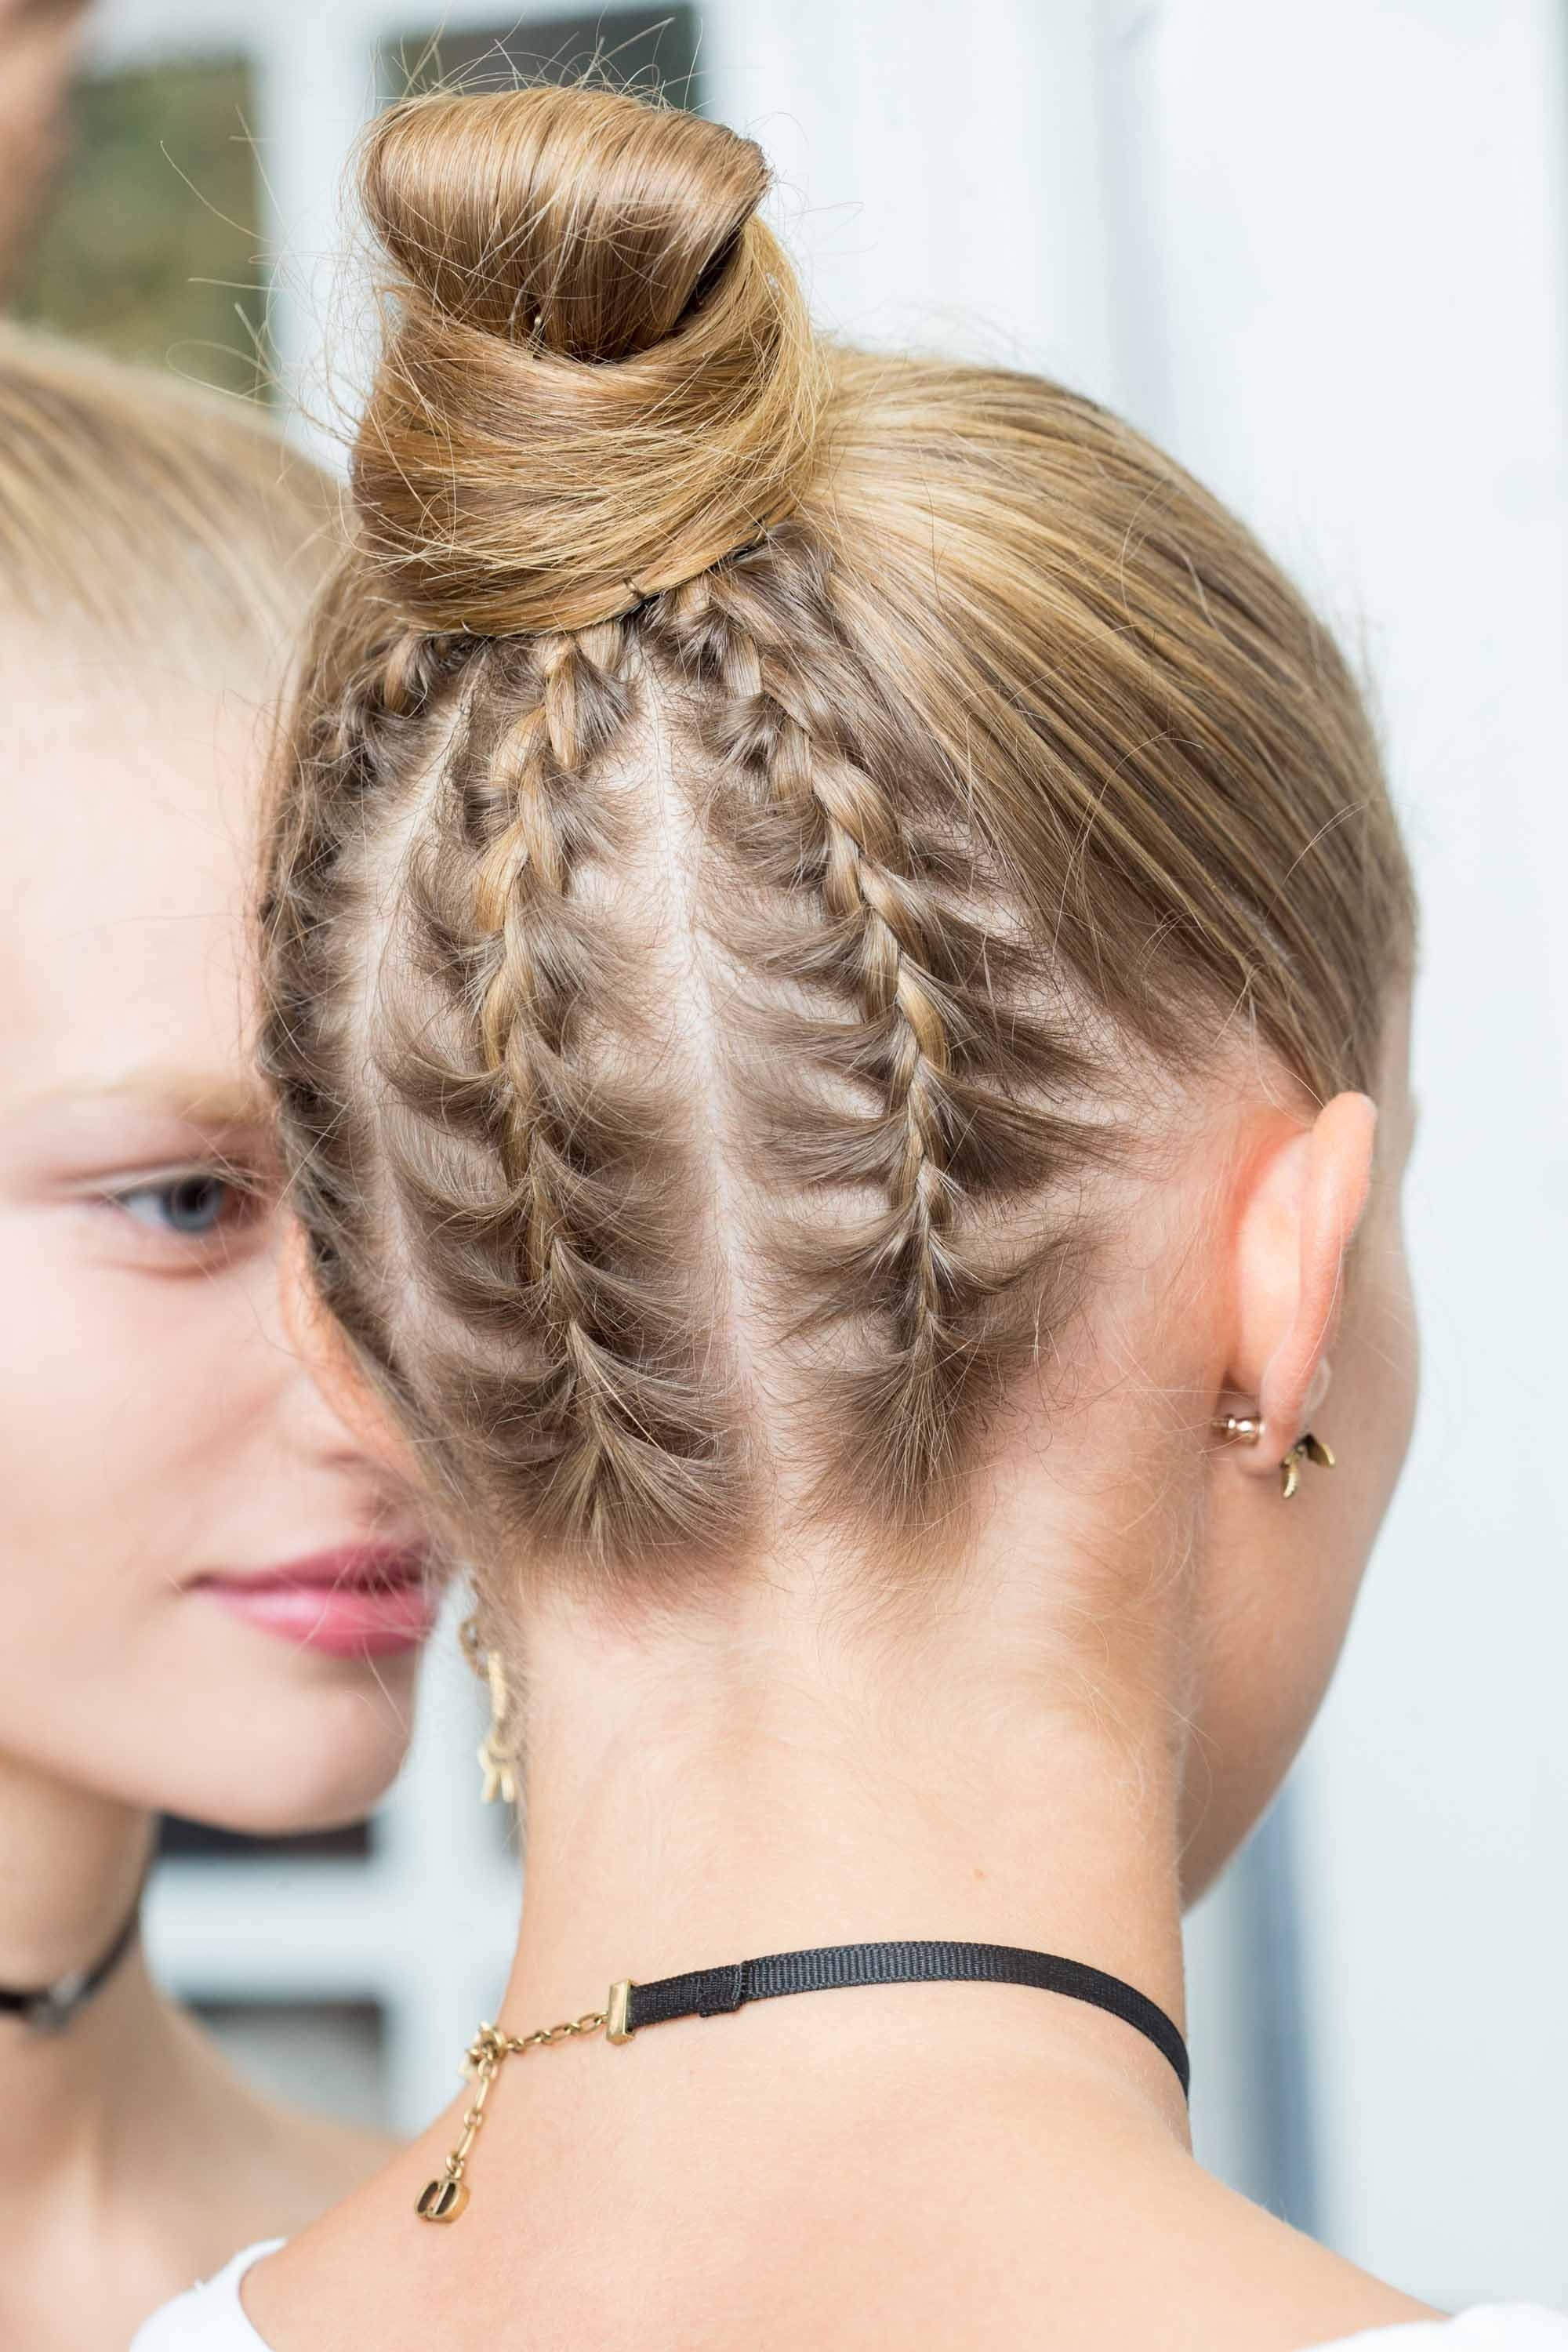 5 Easy Bun Hairstyles To Try This Party Season For Braid Lovers Within Famous Cornrows Bun Hairstyles (View 6 of 15)